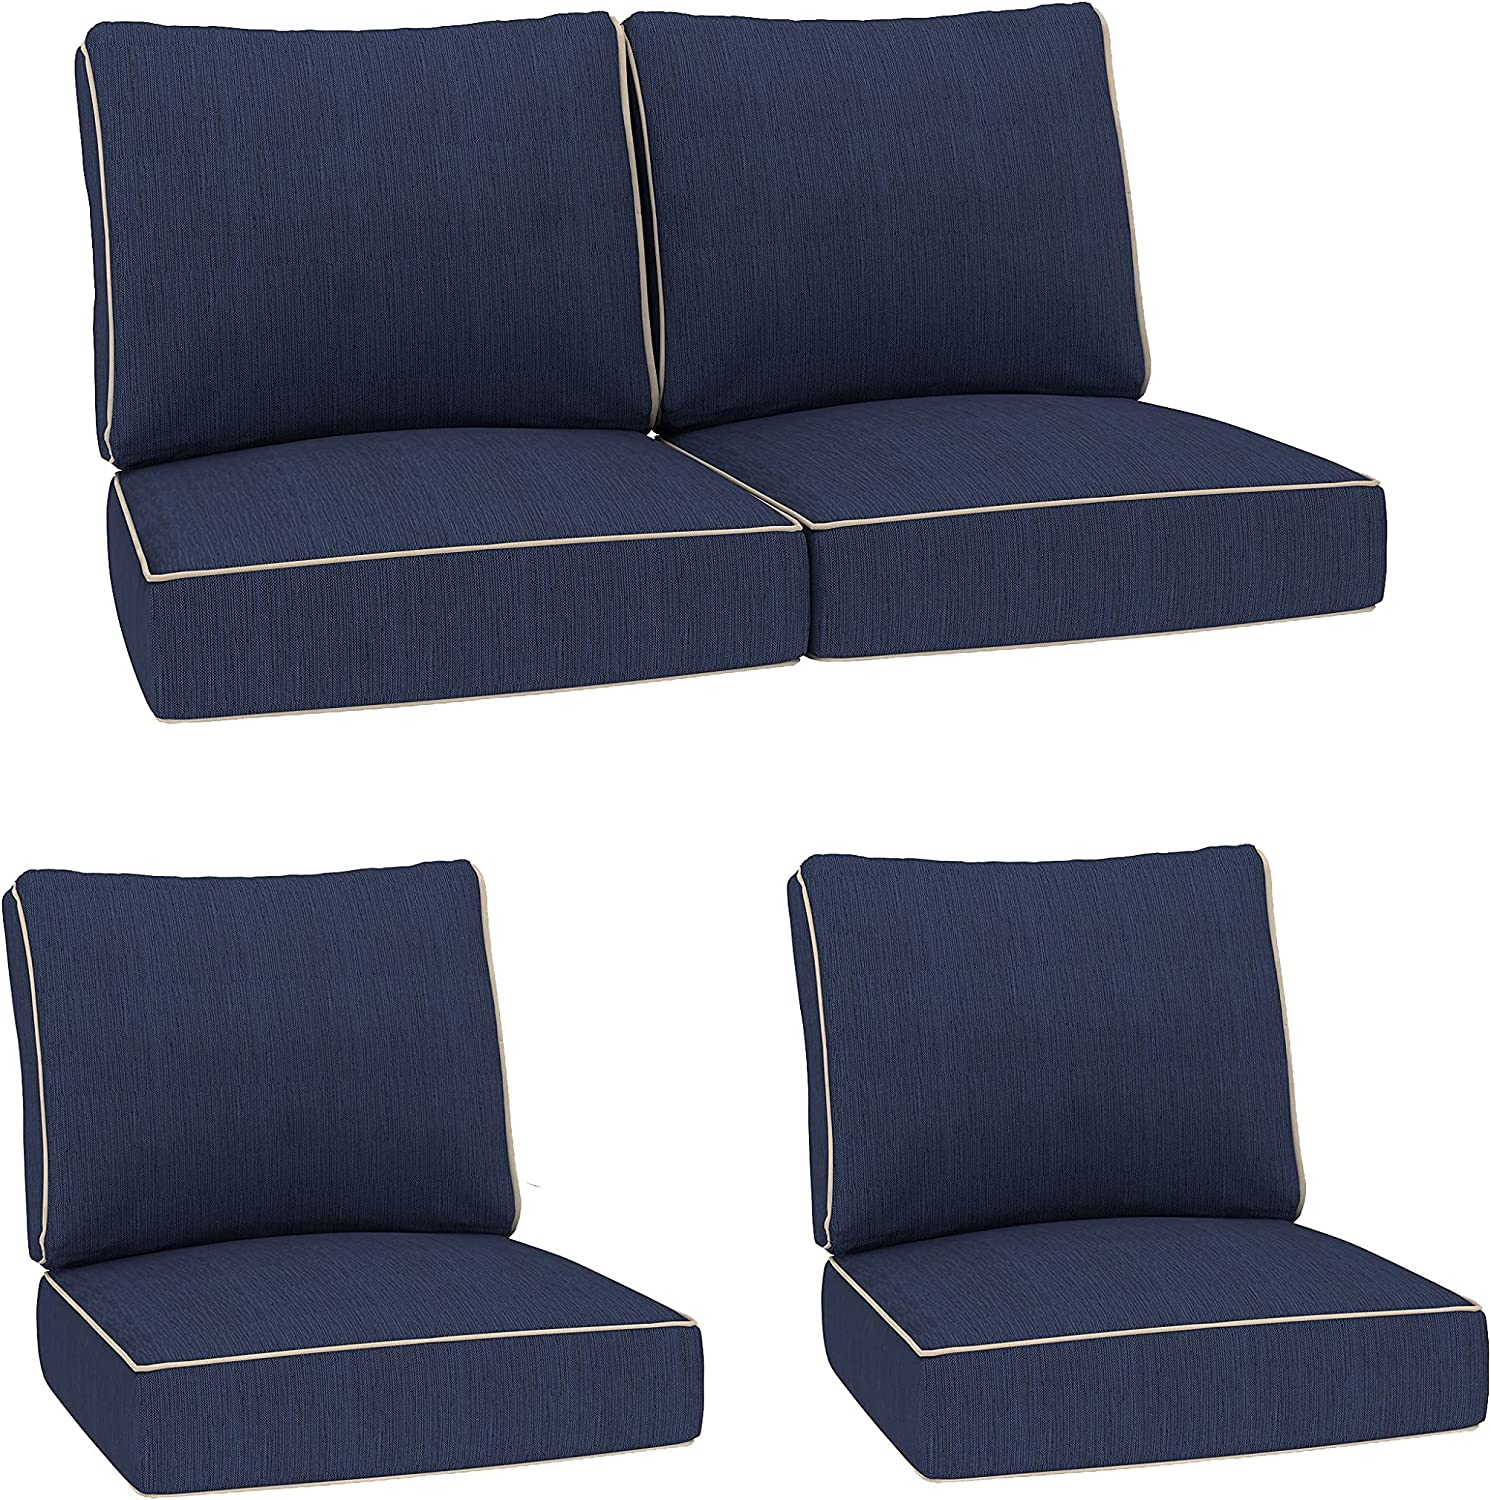 Creative Living Refresh Patio 4pc Loveseat Chat Group Deep Seating 24x24 Outdoor Replacement Cushions, Sisal Indigo